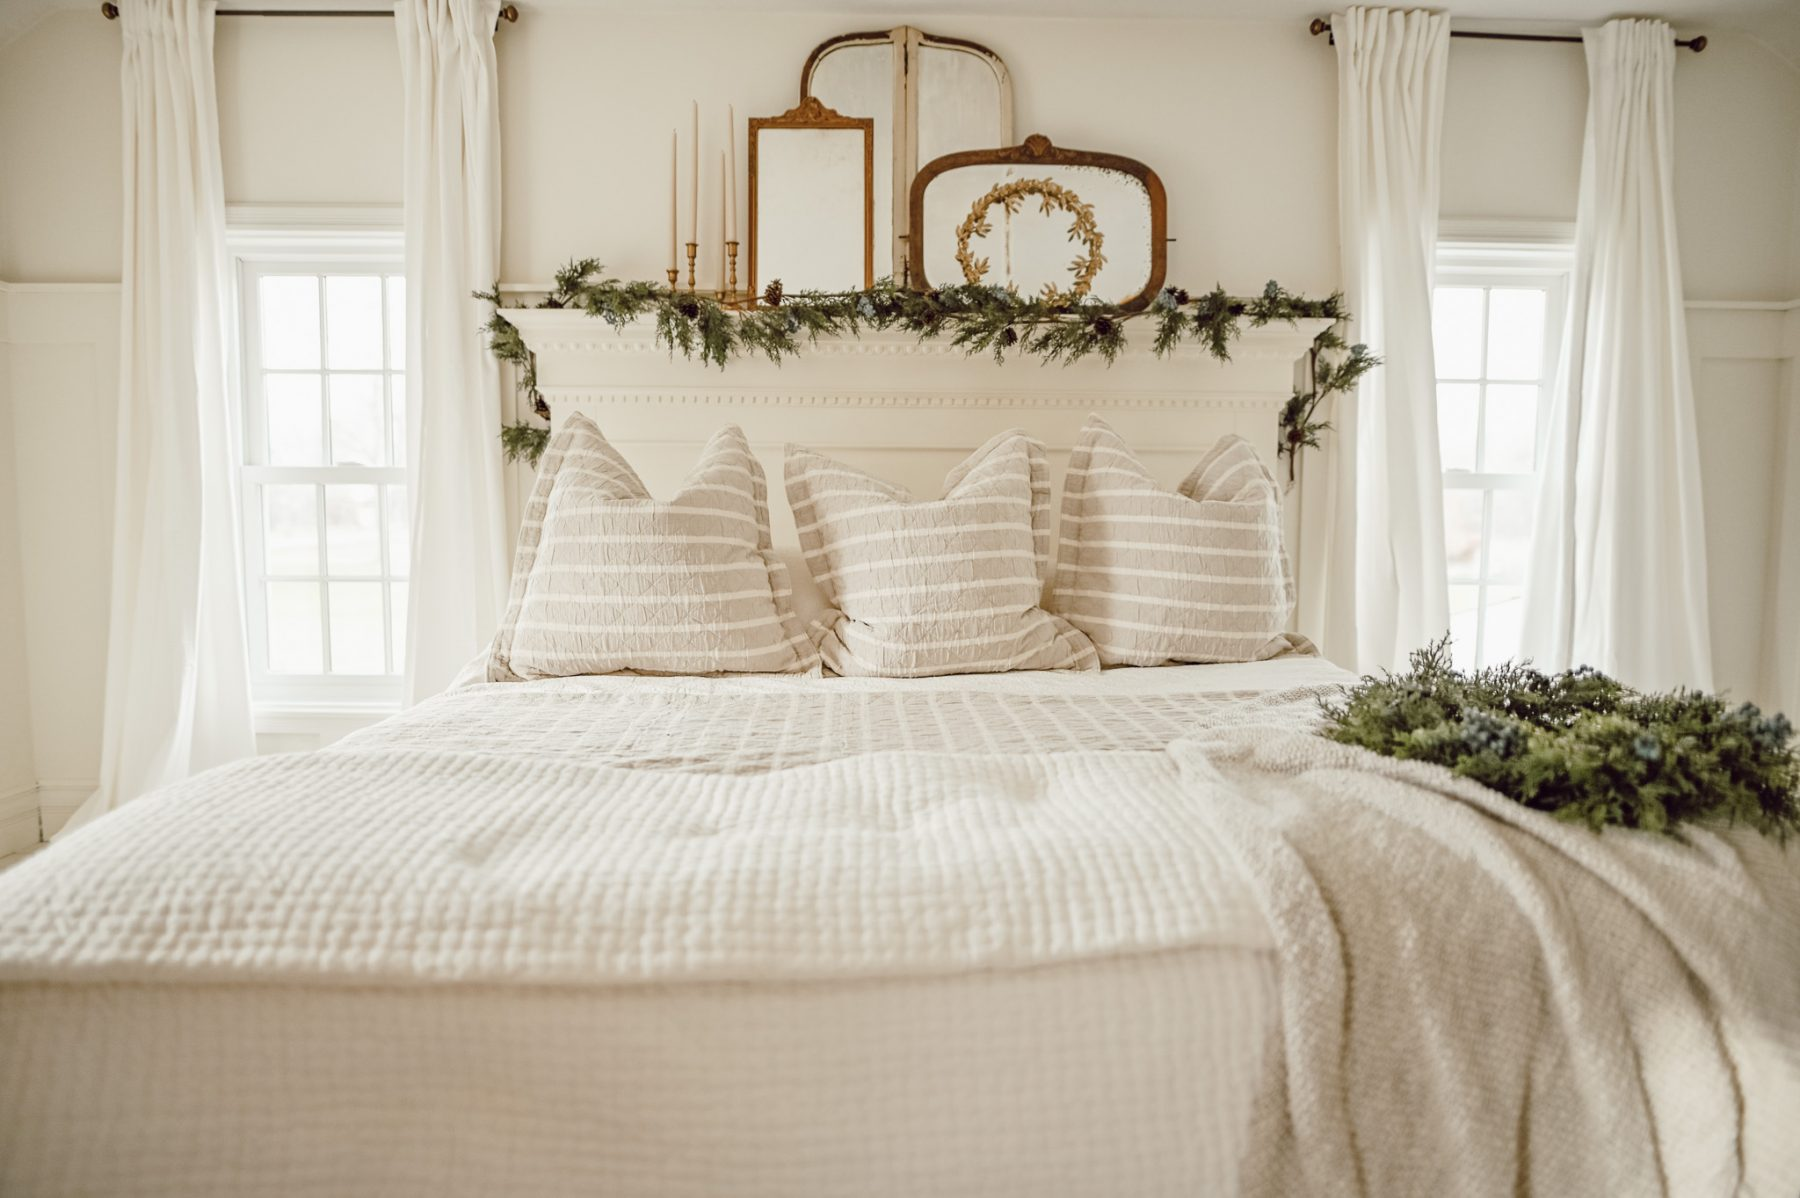 Cottage Style Christmas bed